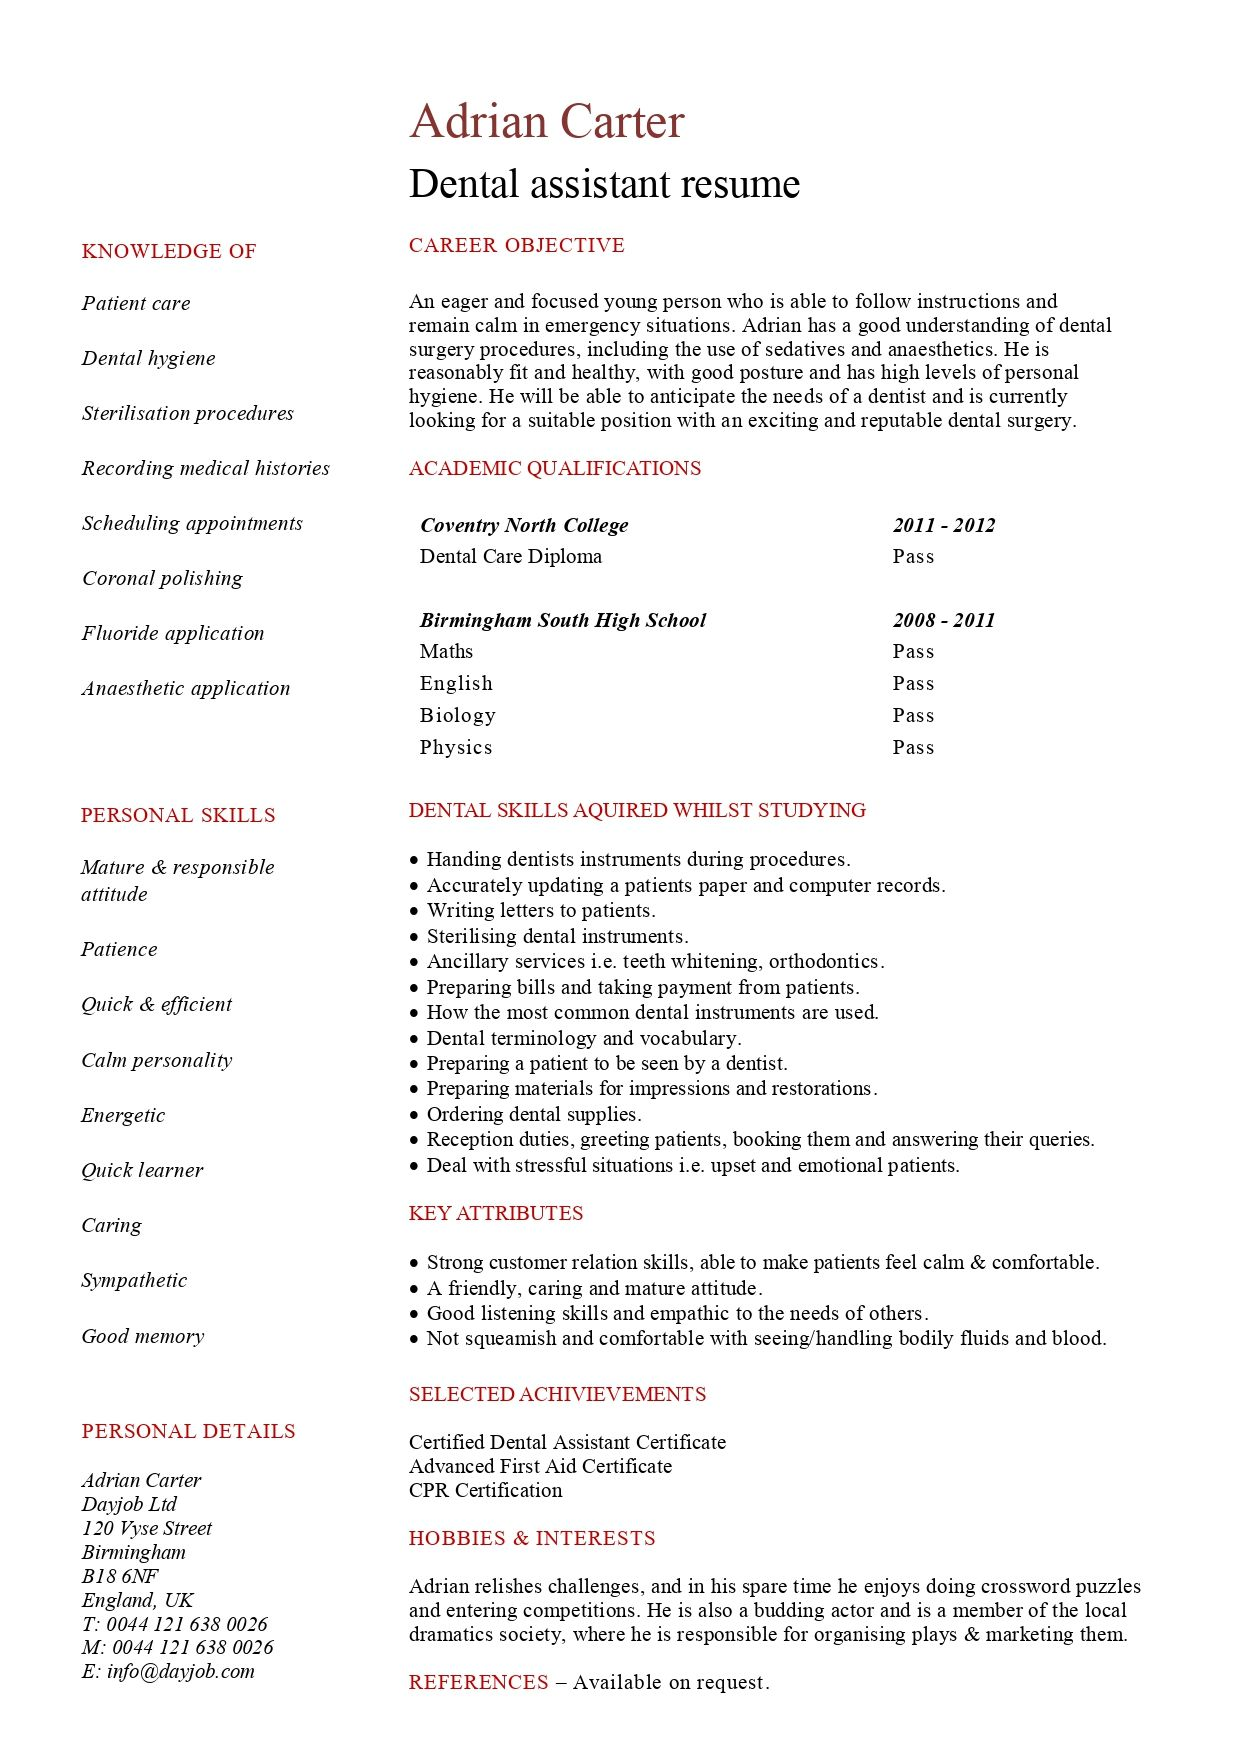 How To Write A Resume With No Experience Guide Template In 2020 Resume No Experience Student Resume Template Resume